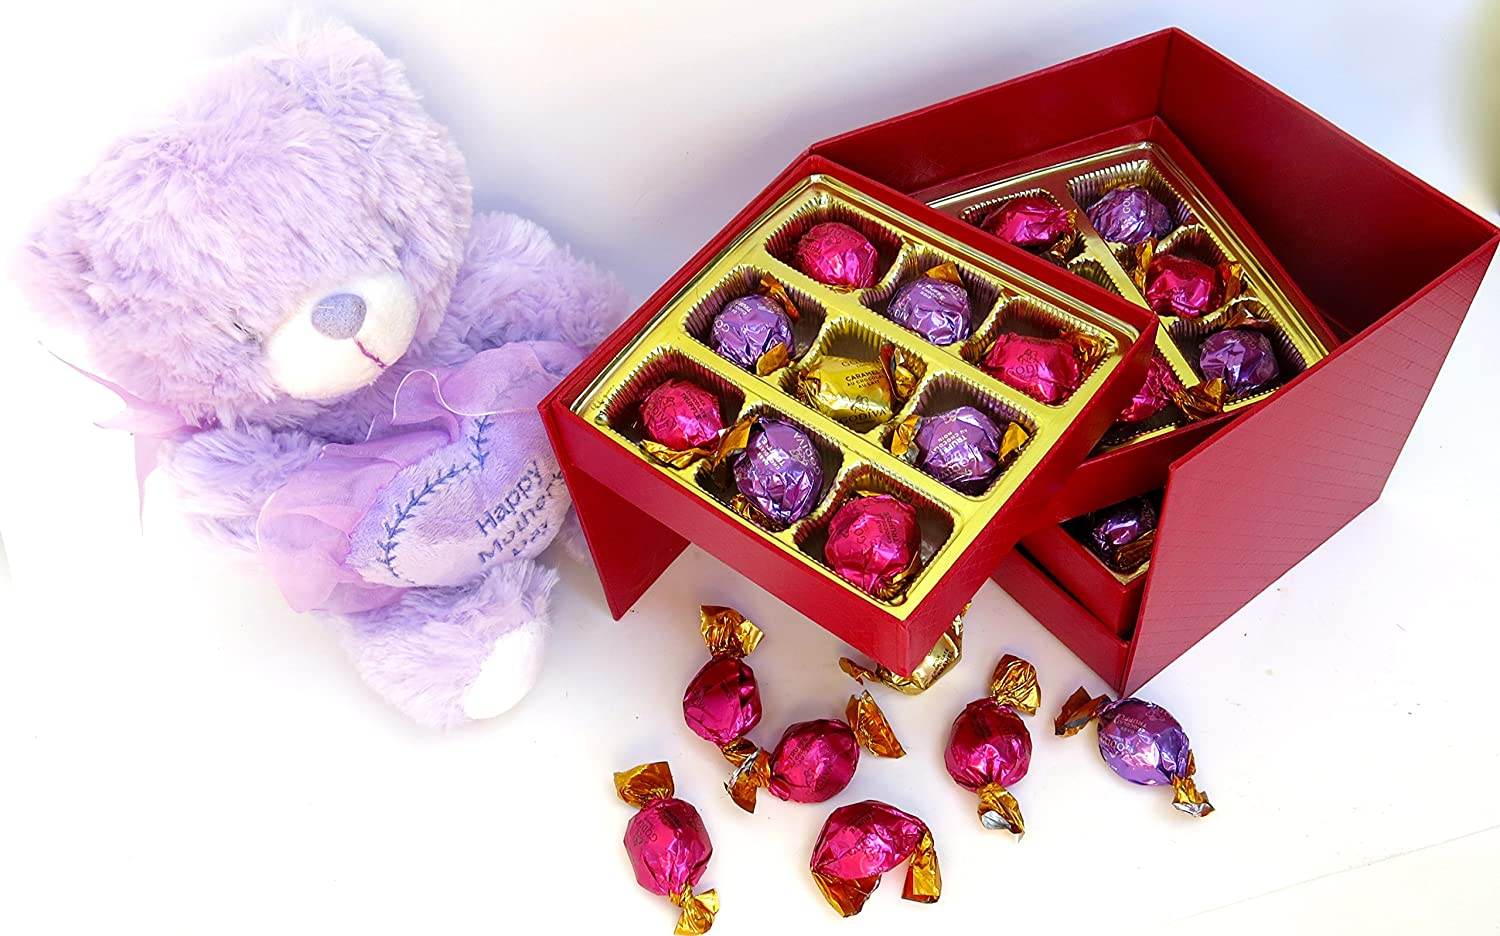 Mothers Day Gift, Alternative, Multi Tier, Four Level Gift Box Filled with 36 Premium Assorted Godiva Dessert Truffles, Chocolate Lava Cake, Strawberry Cheesecake, Creme Brûlée and Vanilla and a Plush Teddy Bear